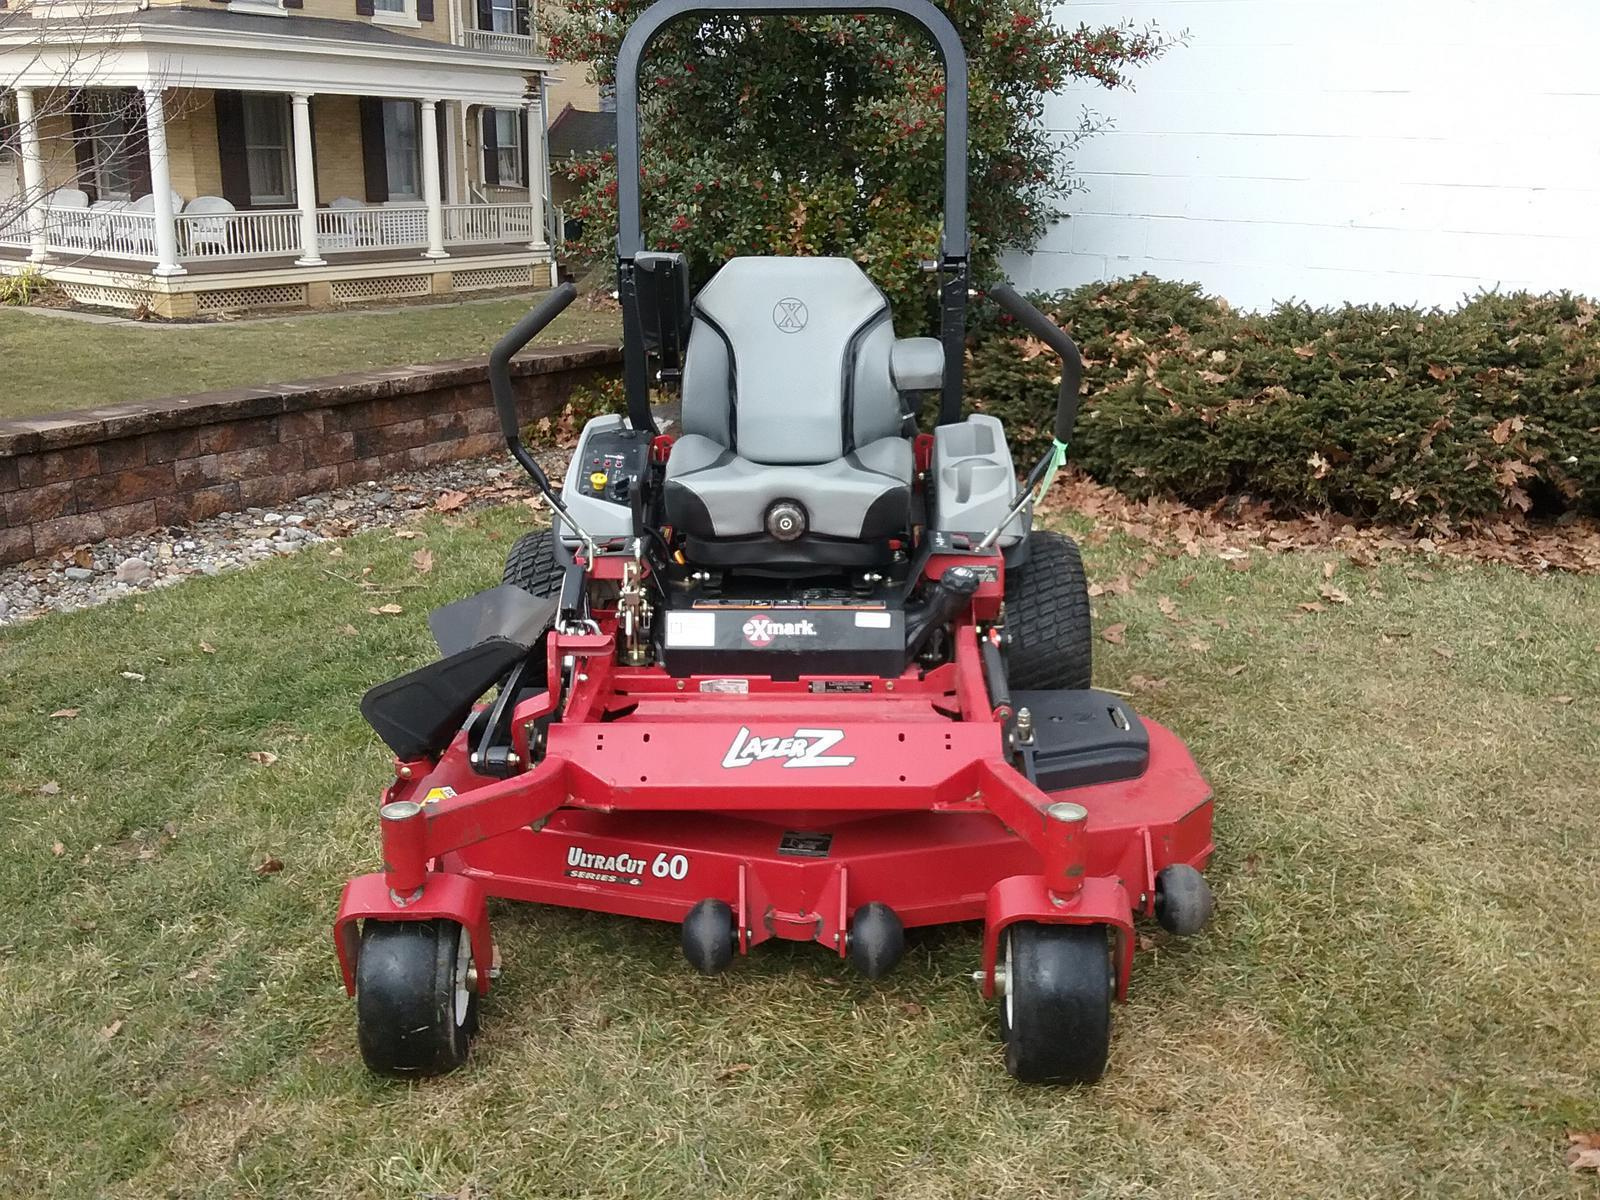 Inventory from Exmark and Walker Mowers Ebling's & RS Hollinger